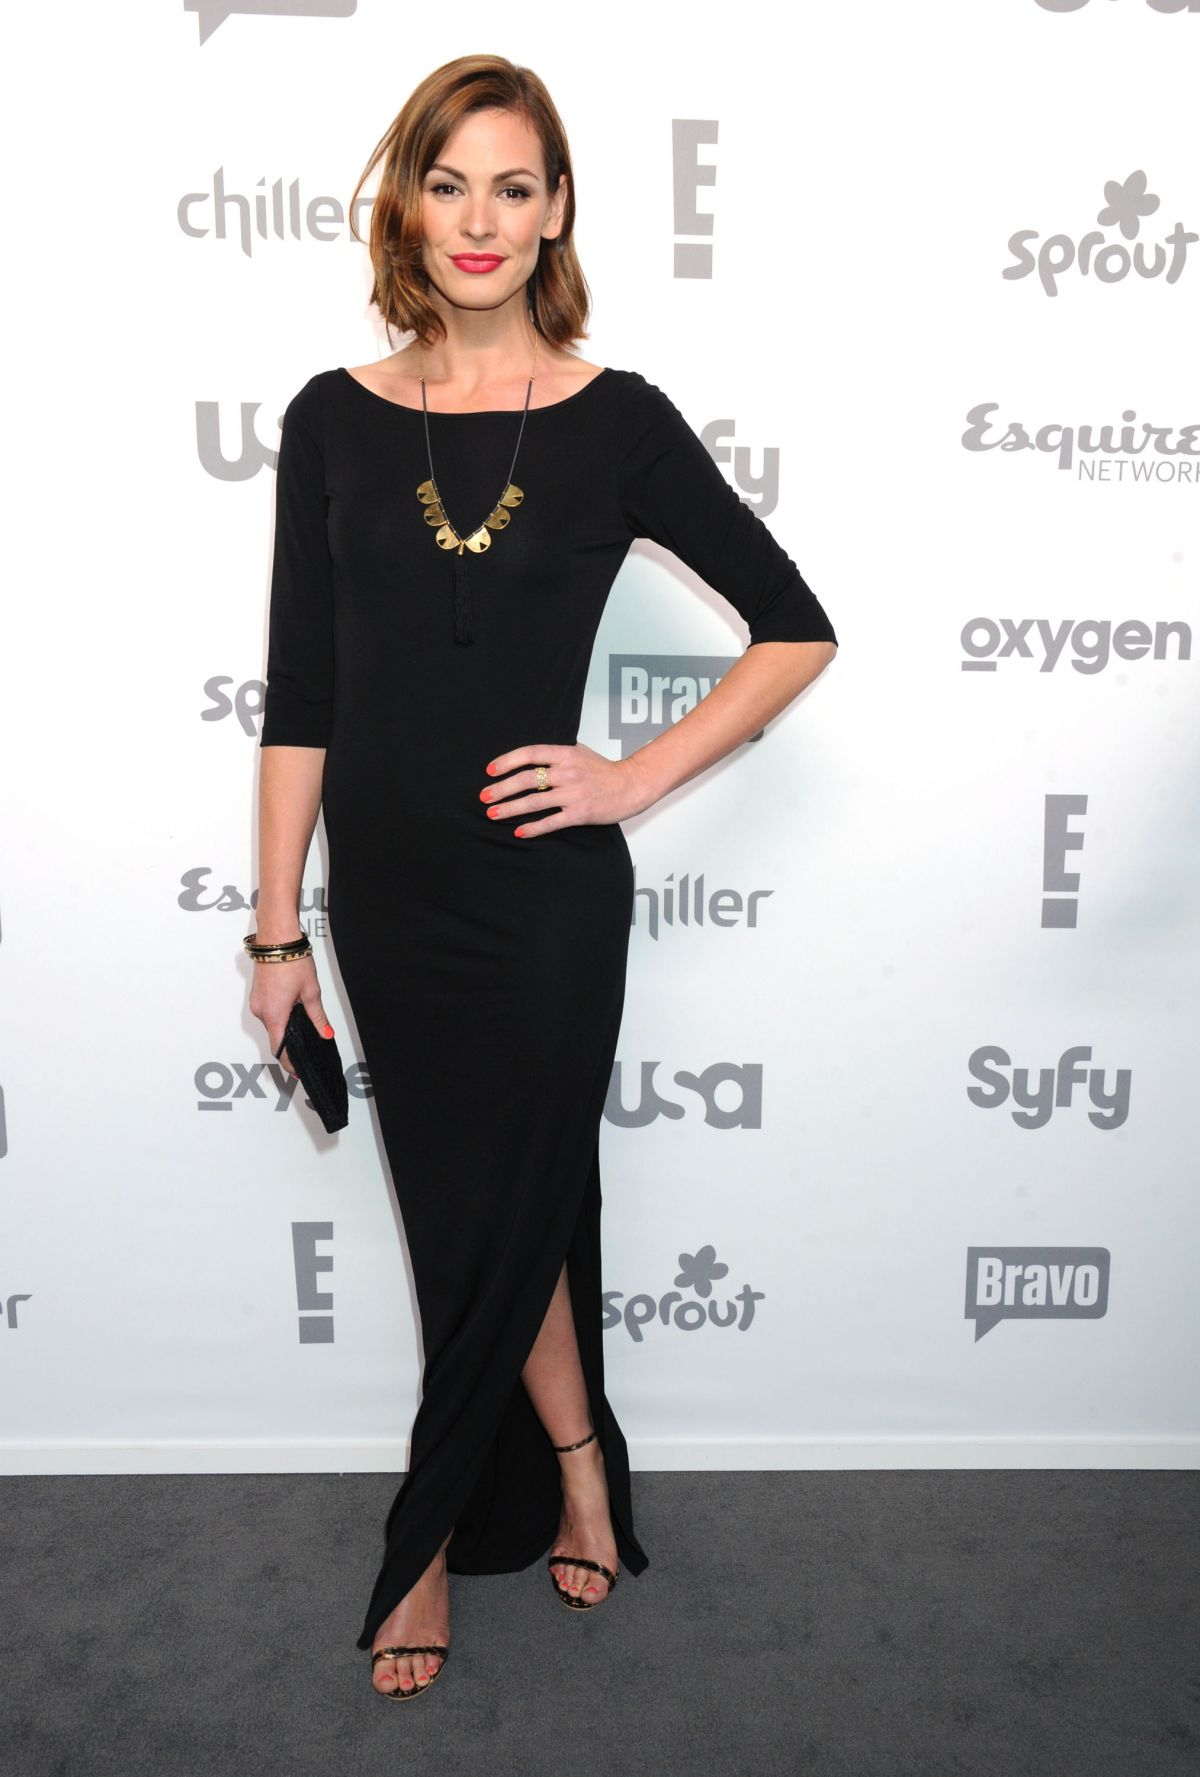 DAISY BETTS at 2015 NBC/Universal Cable Entertainment Upfront in New York